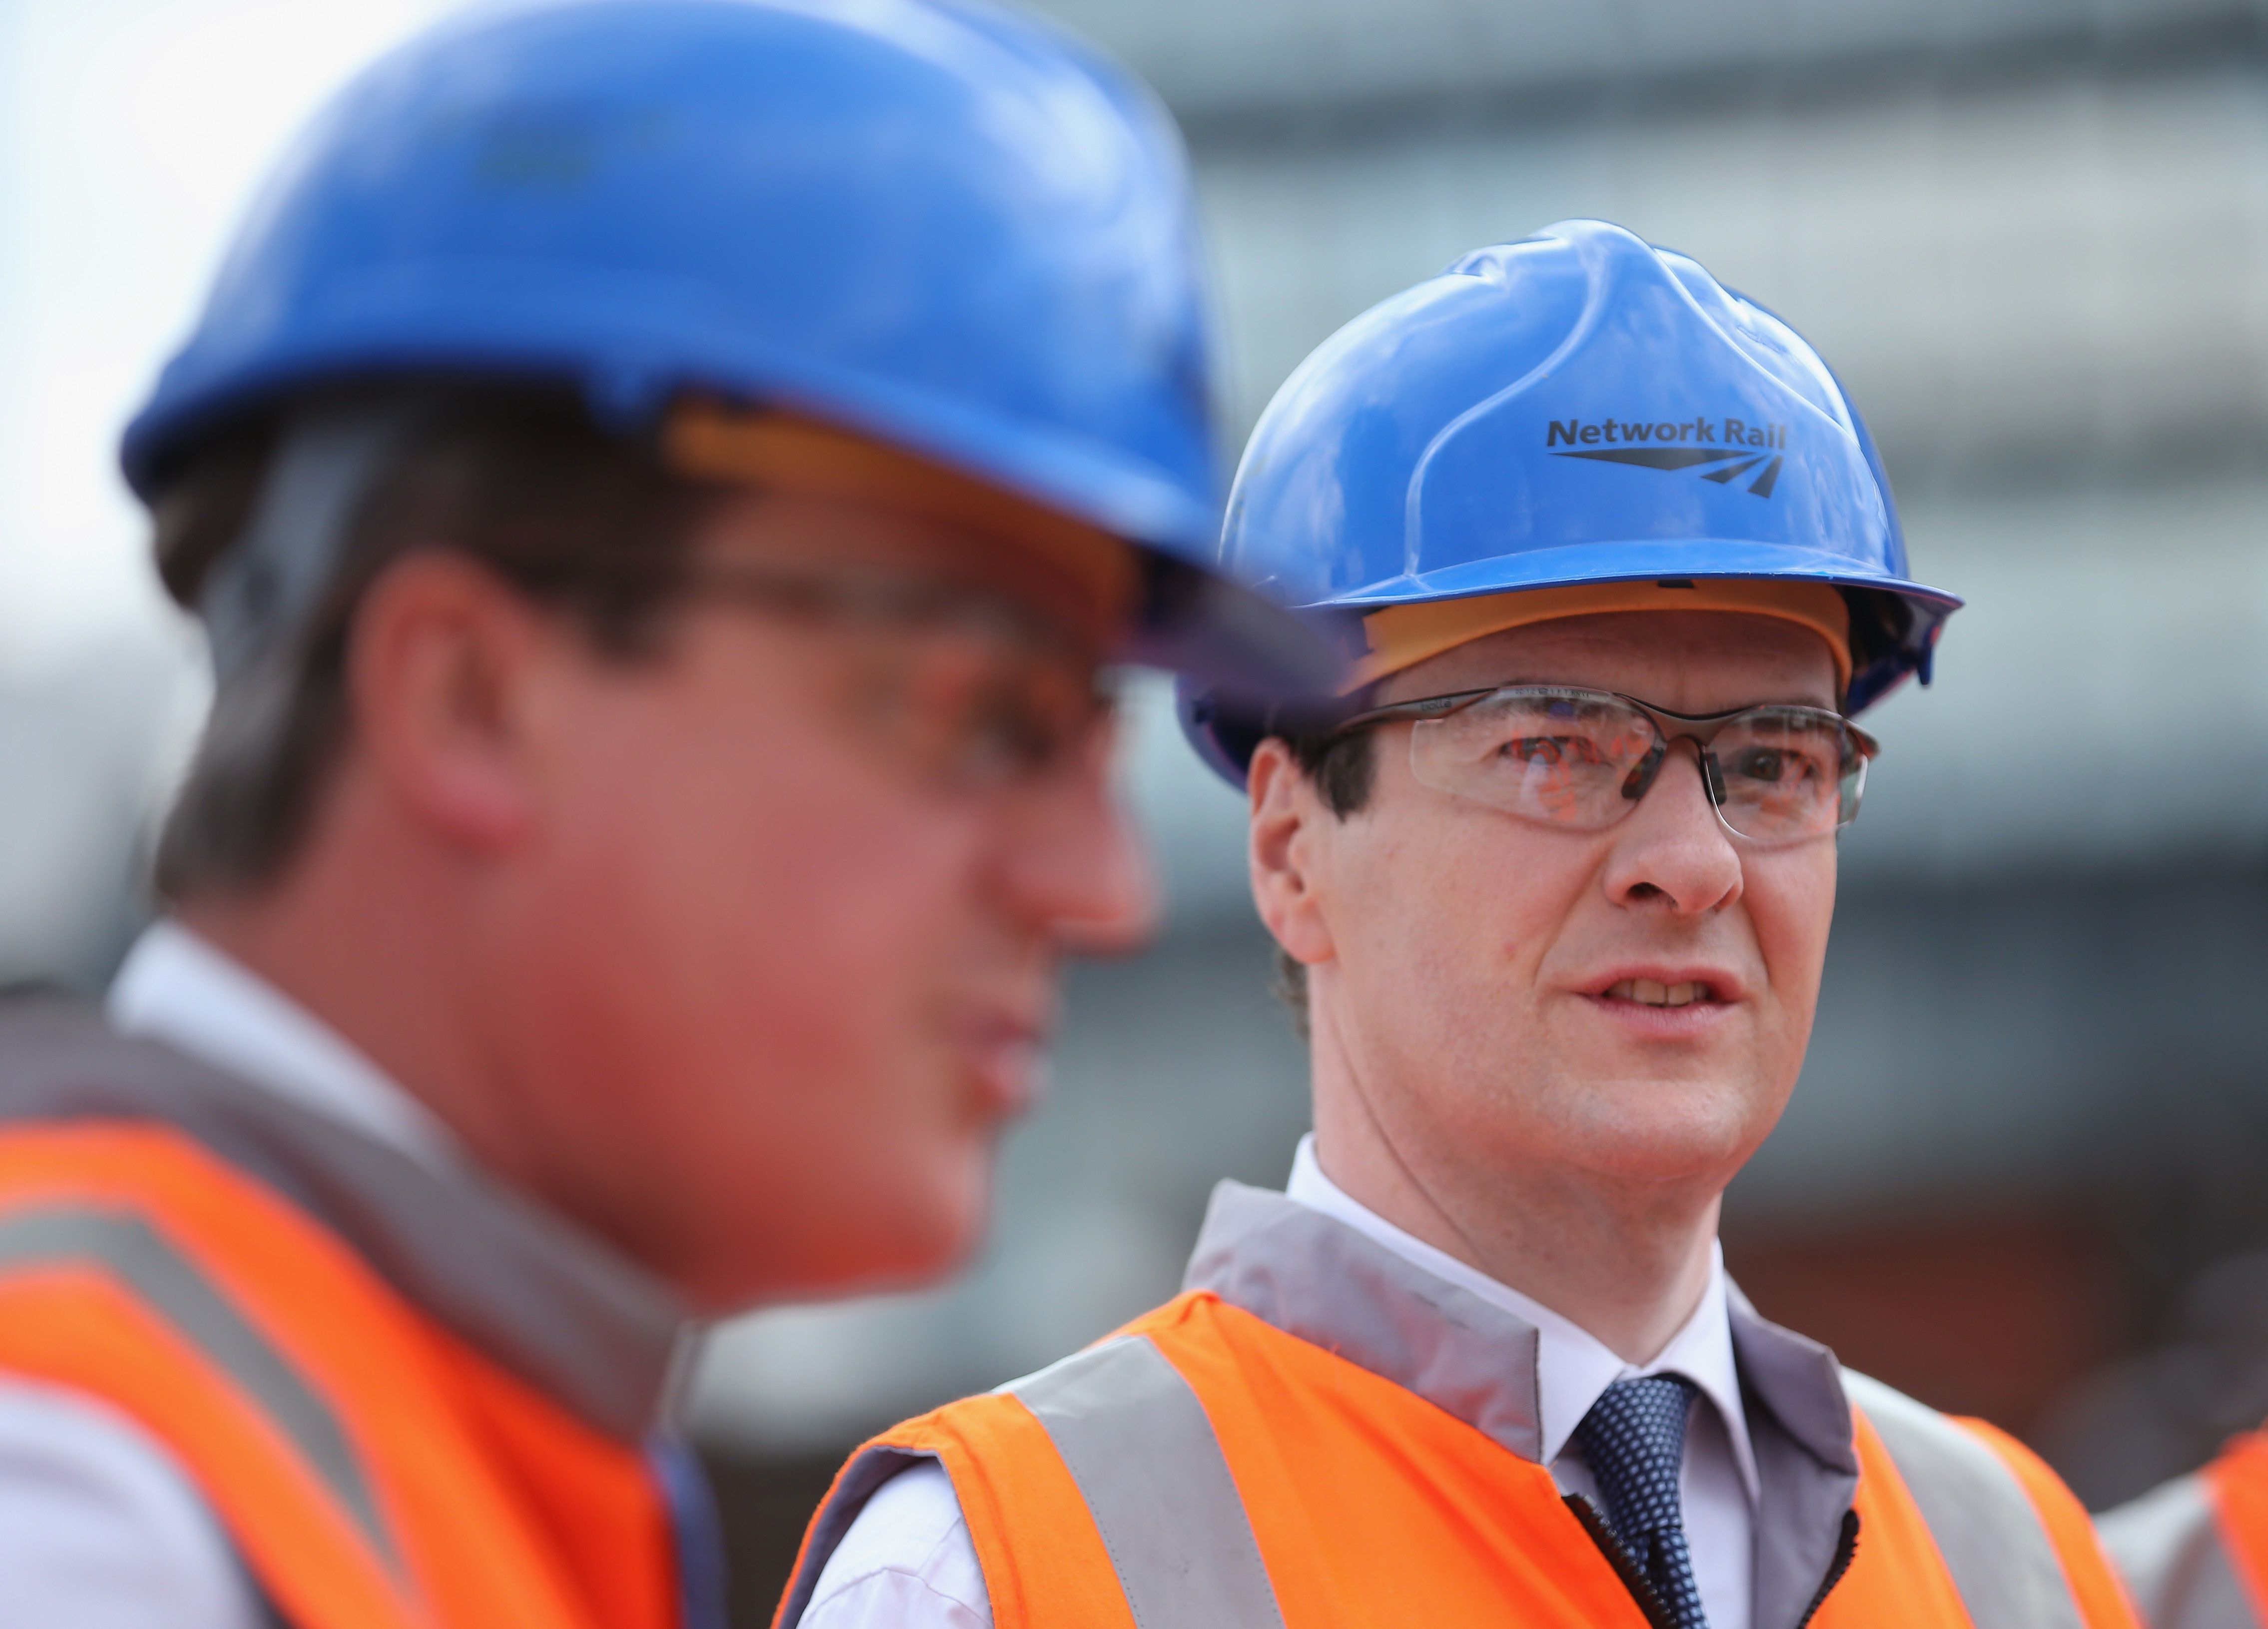 Major News For HS3 And Crossrail In George Osborne's Budget